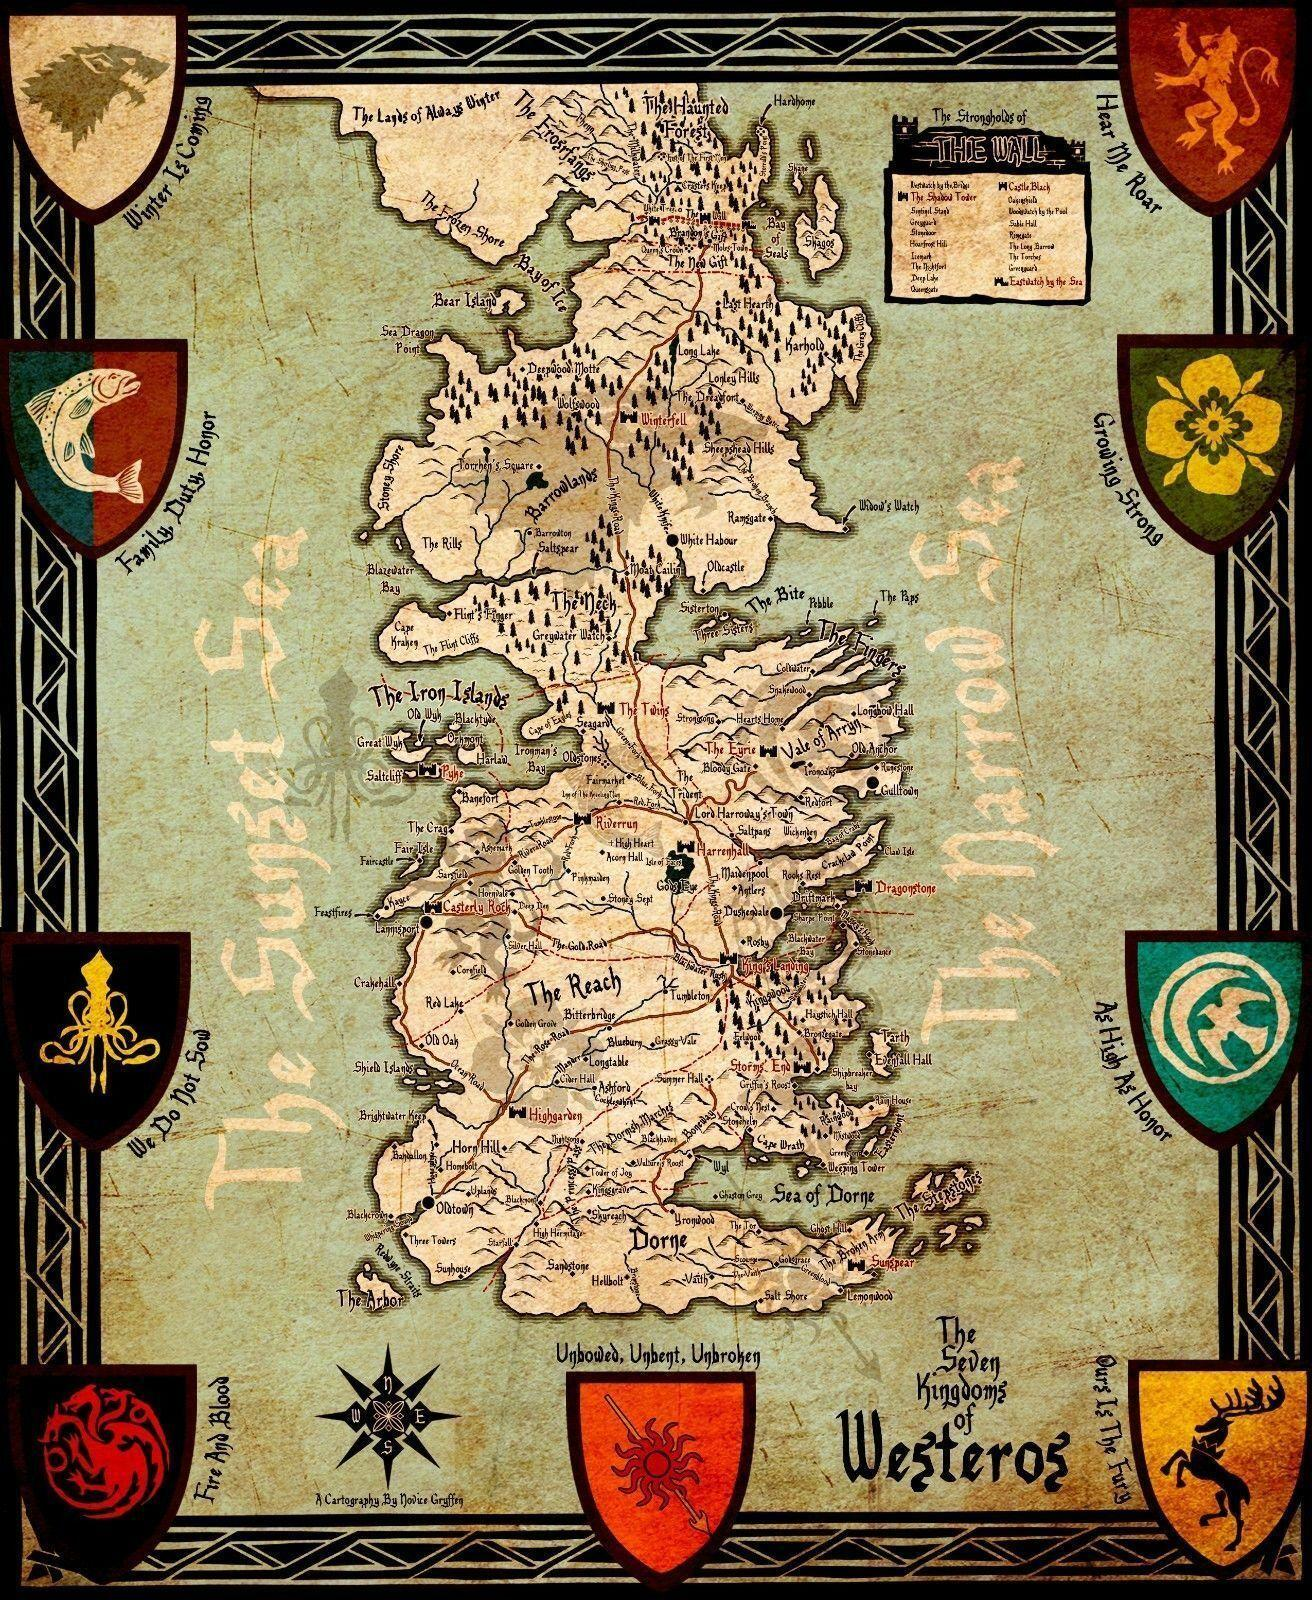 Game Of Thrones Houses Map Westeros Art Silk Poster 24x36inch 24x43inch Game Of Thrones Map Westeros on game of thrones map print, westeros cities map, game of thrones map labeled, game of thrones ireland map, game of thrones map wallpaper, game of thrones map official, game of thrones subway map, the citadel game of thrones map, game of thrones essos map, game of thrones map of continents, game of thrones map poster, from game of thrones map, game of thrones detailed map, game of thrones map clans, game of thrones world map printable, game of thrones astapor map, game of thrones map the south, crown of thrones map, harrenhal game of thrones map,